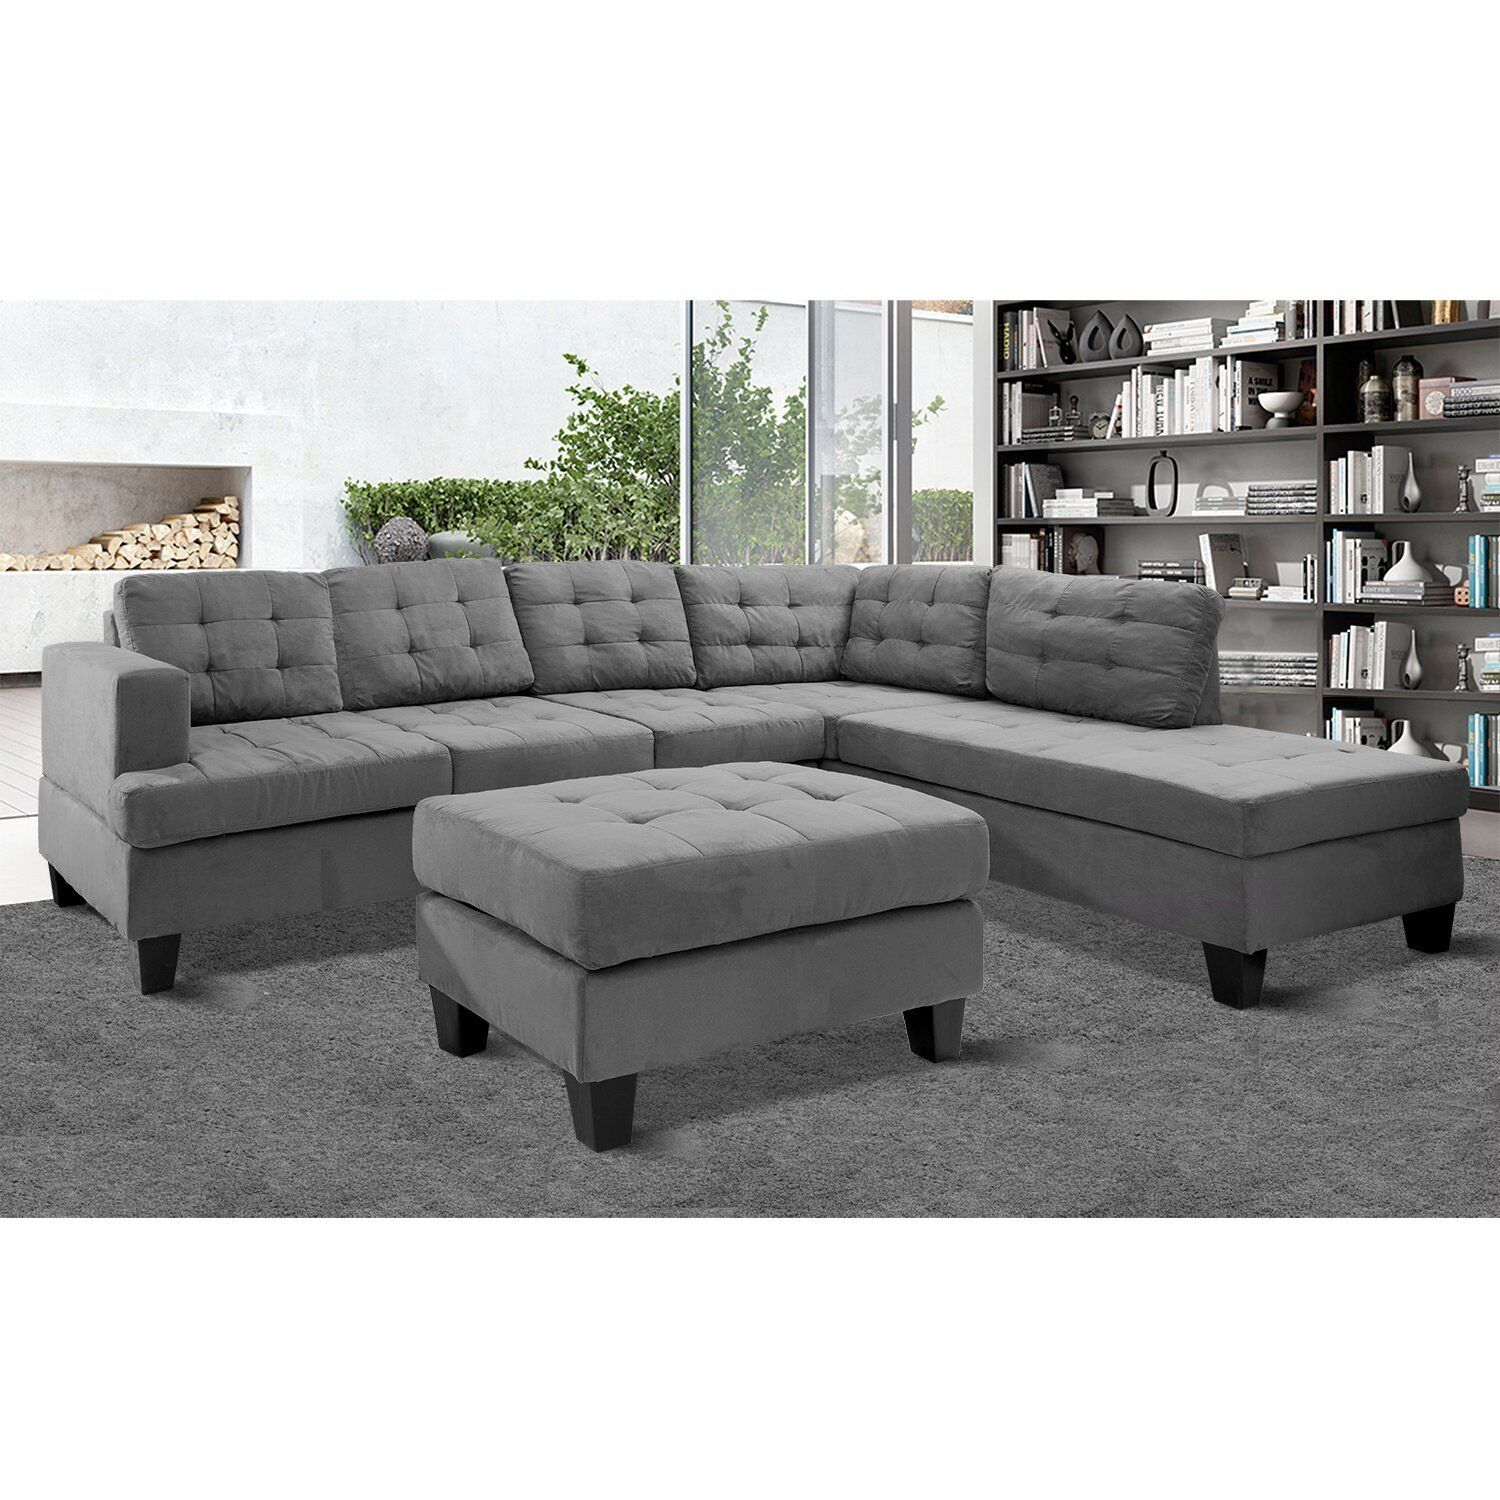 Merax 3 piece Reversible Sectional Sofa With Chaise and Ottoman